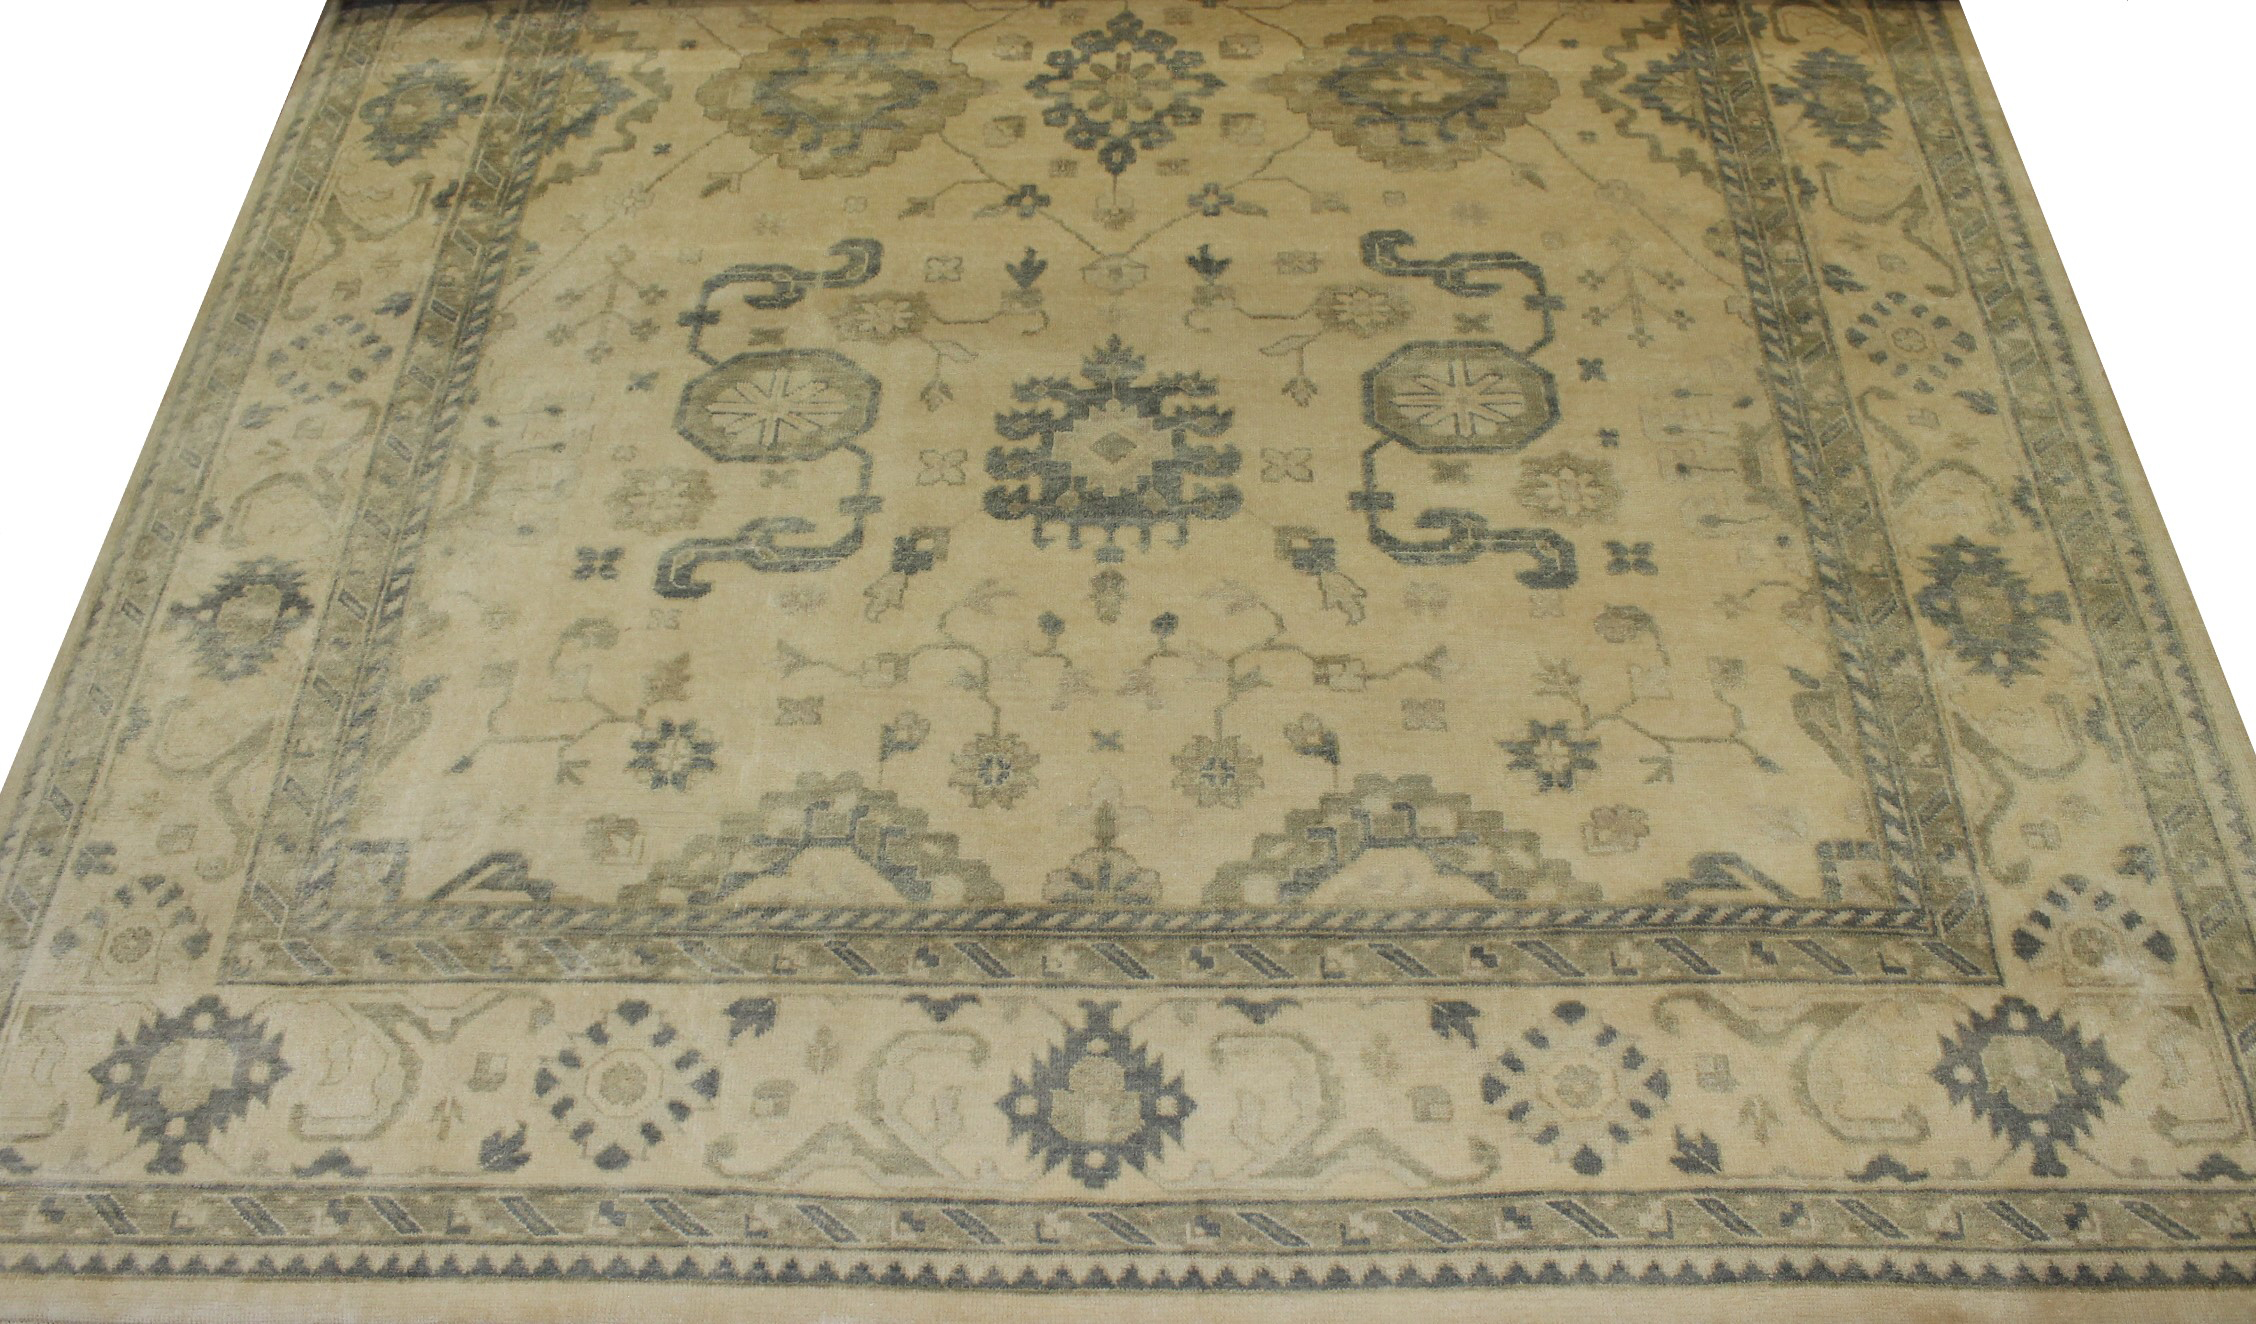 10x14 Oushak Hand Knotted Wool Area Rug - MR16881